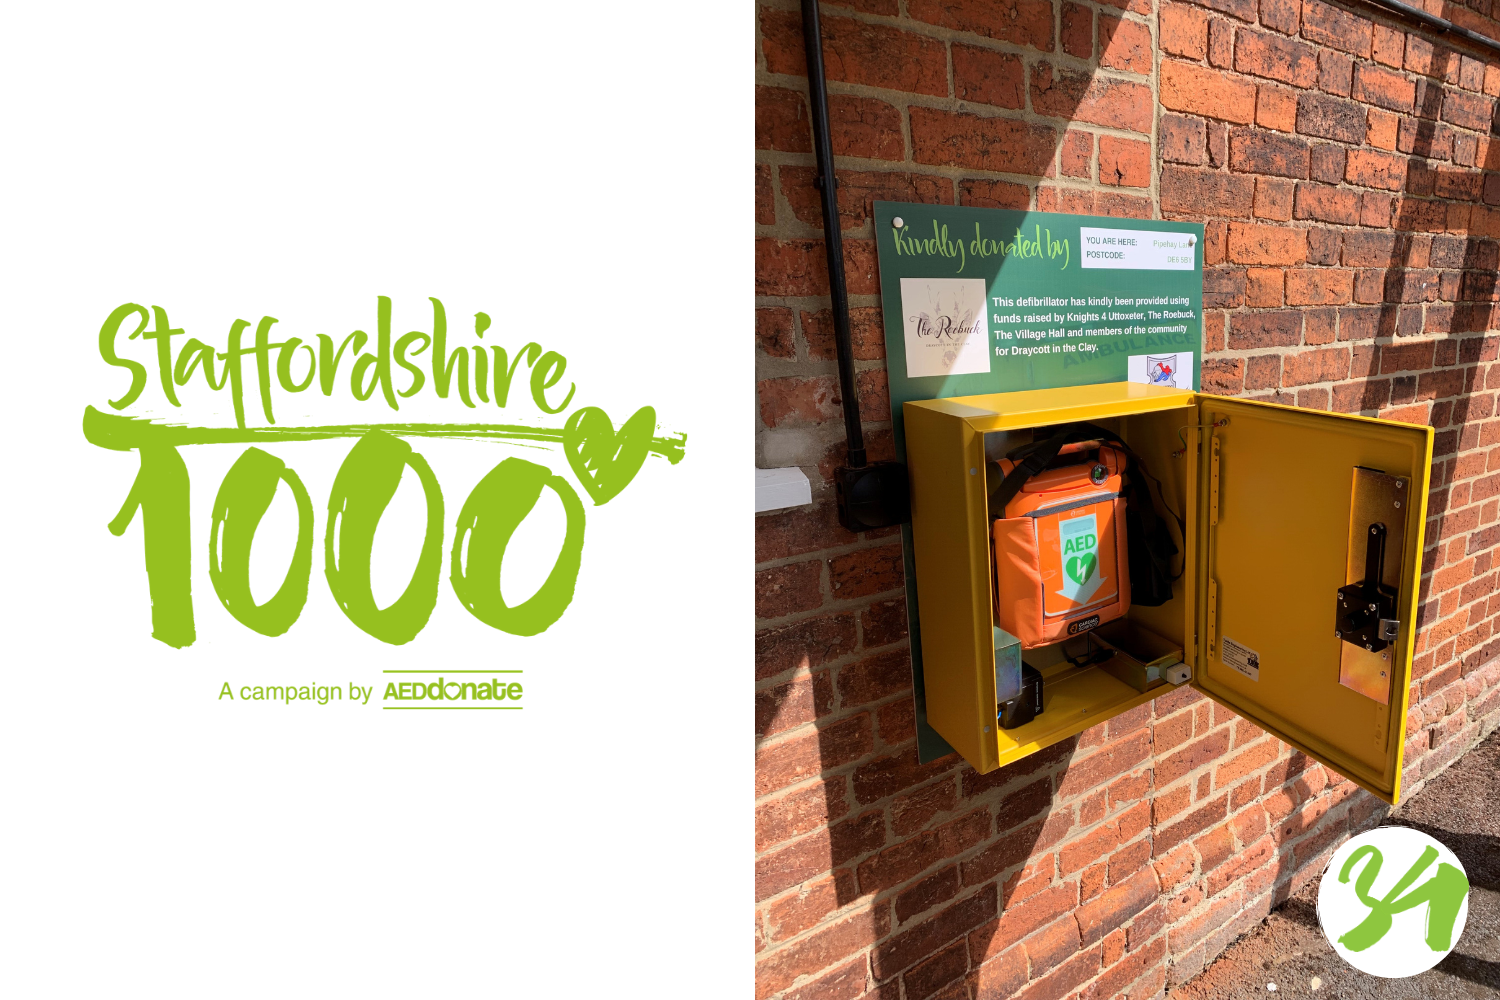 Defibrillator for Draycott in the Clay